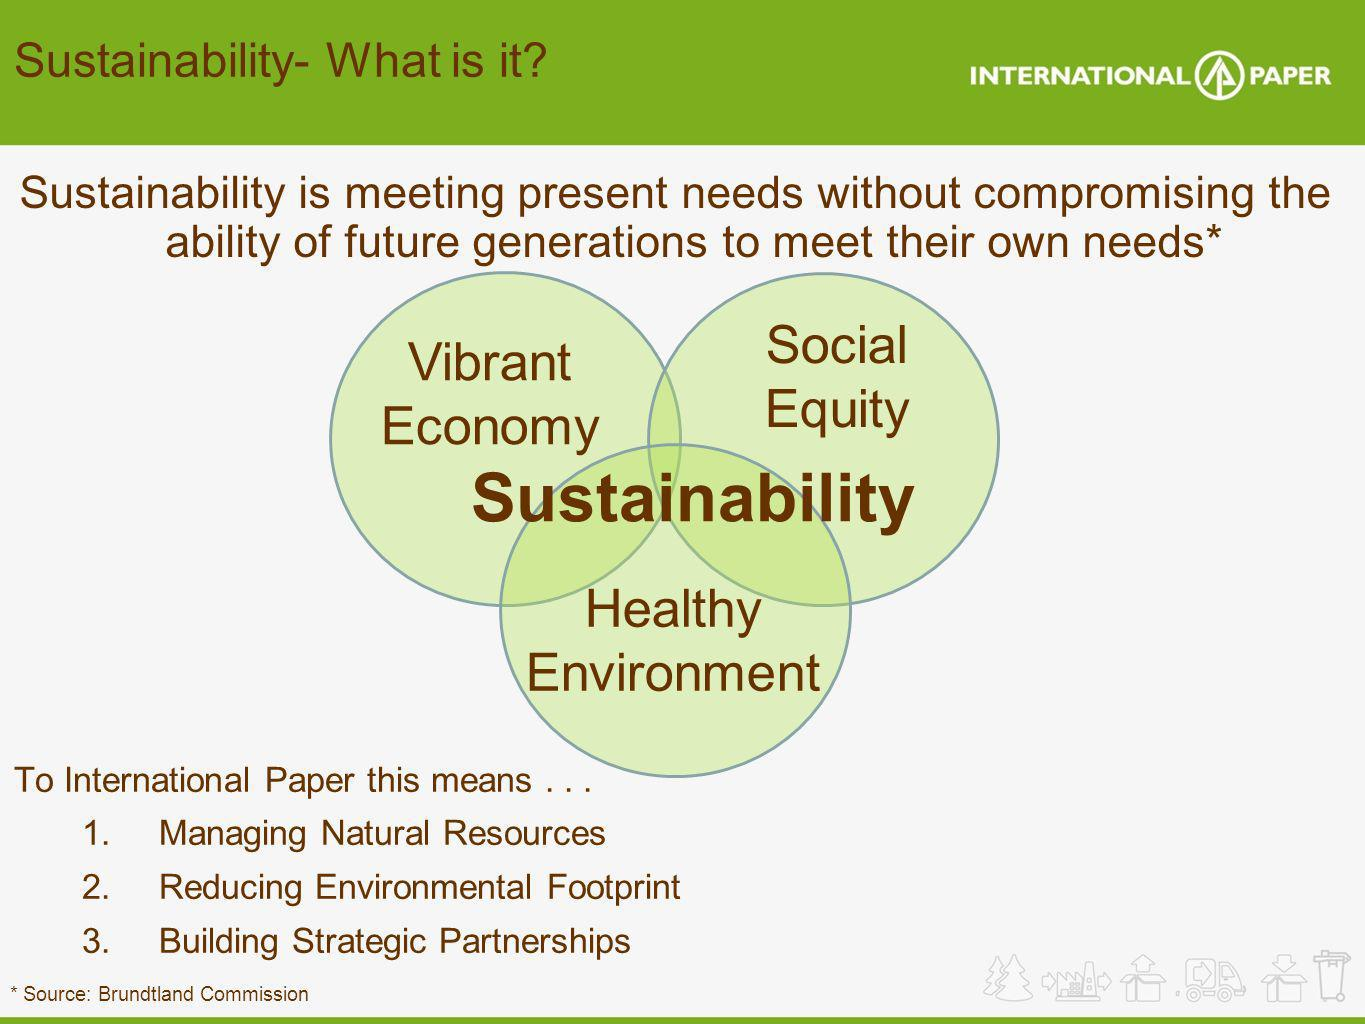 Sustainability Social Vibrant Equity Economy Healthy Environment